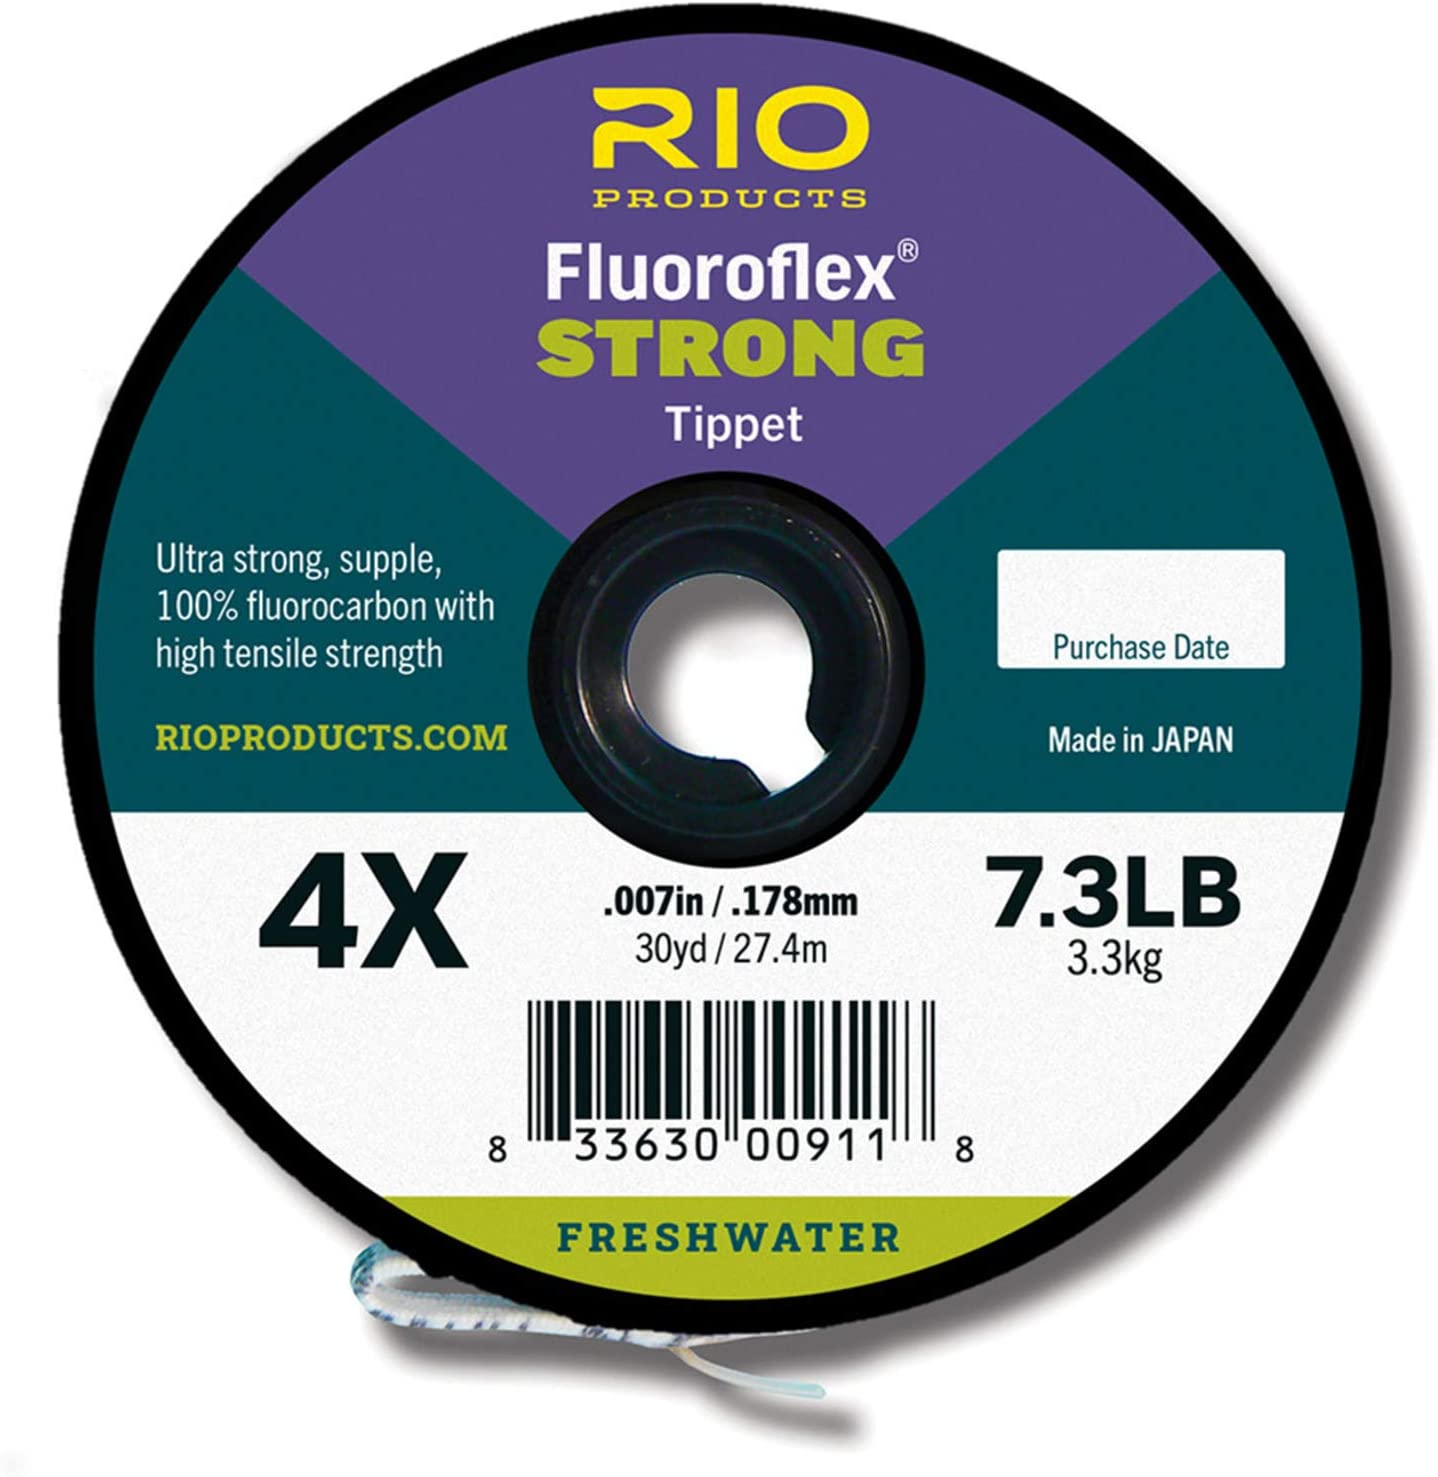 Rio Fluoroflex Strong New arrival Fluorocarbon Super beauty product restock quality top! Tippet Yards 30